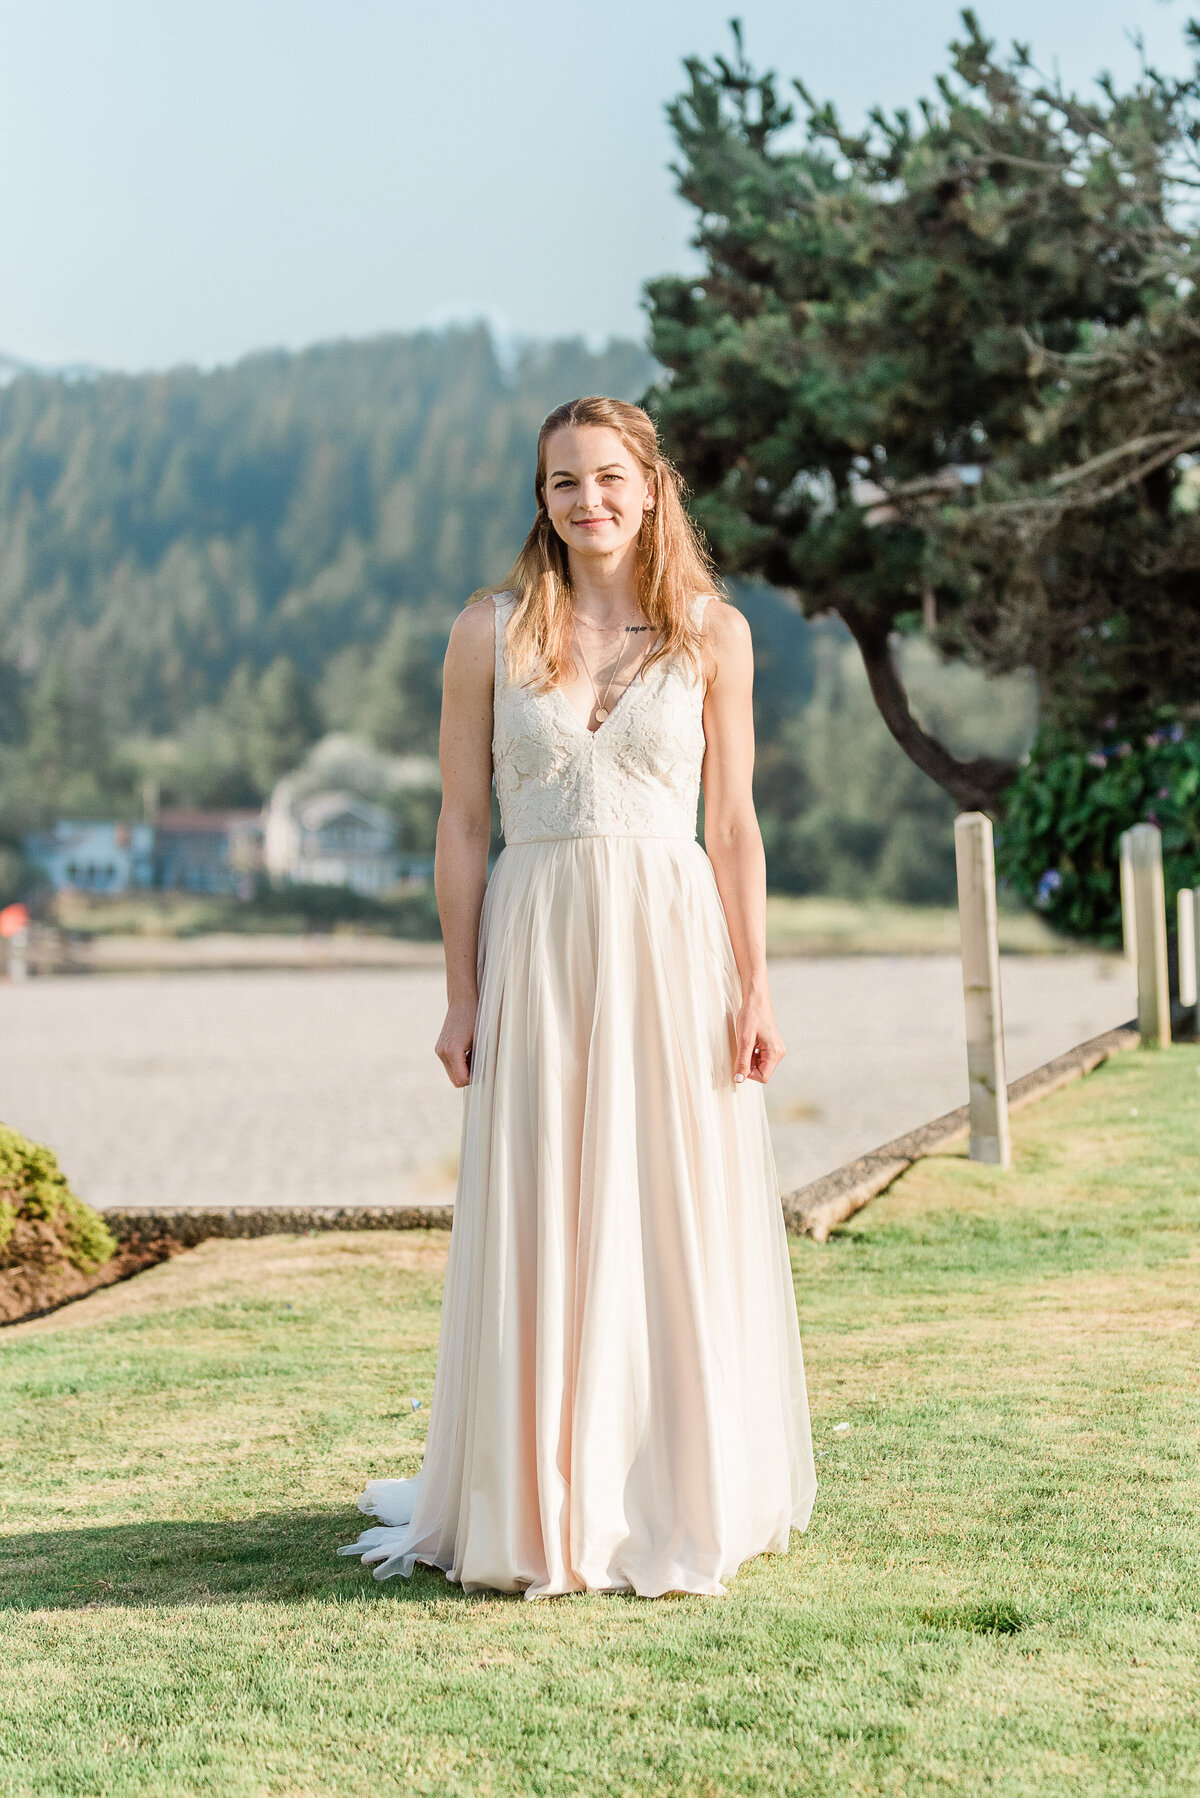 Cannon-Beach-Elopement-Photographer-86